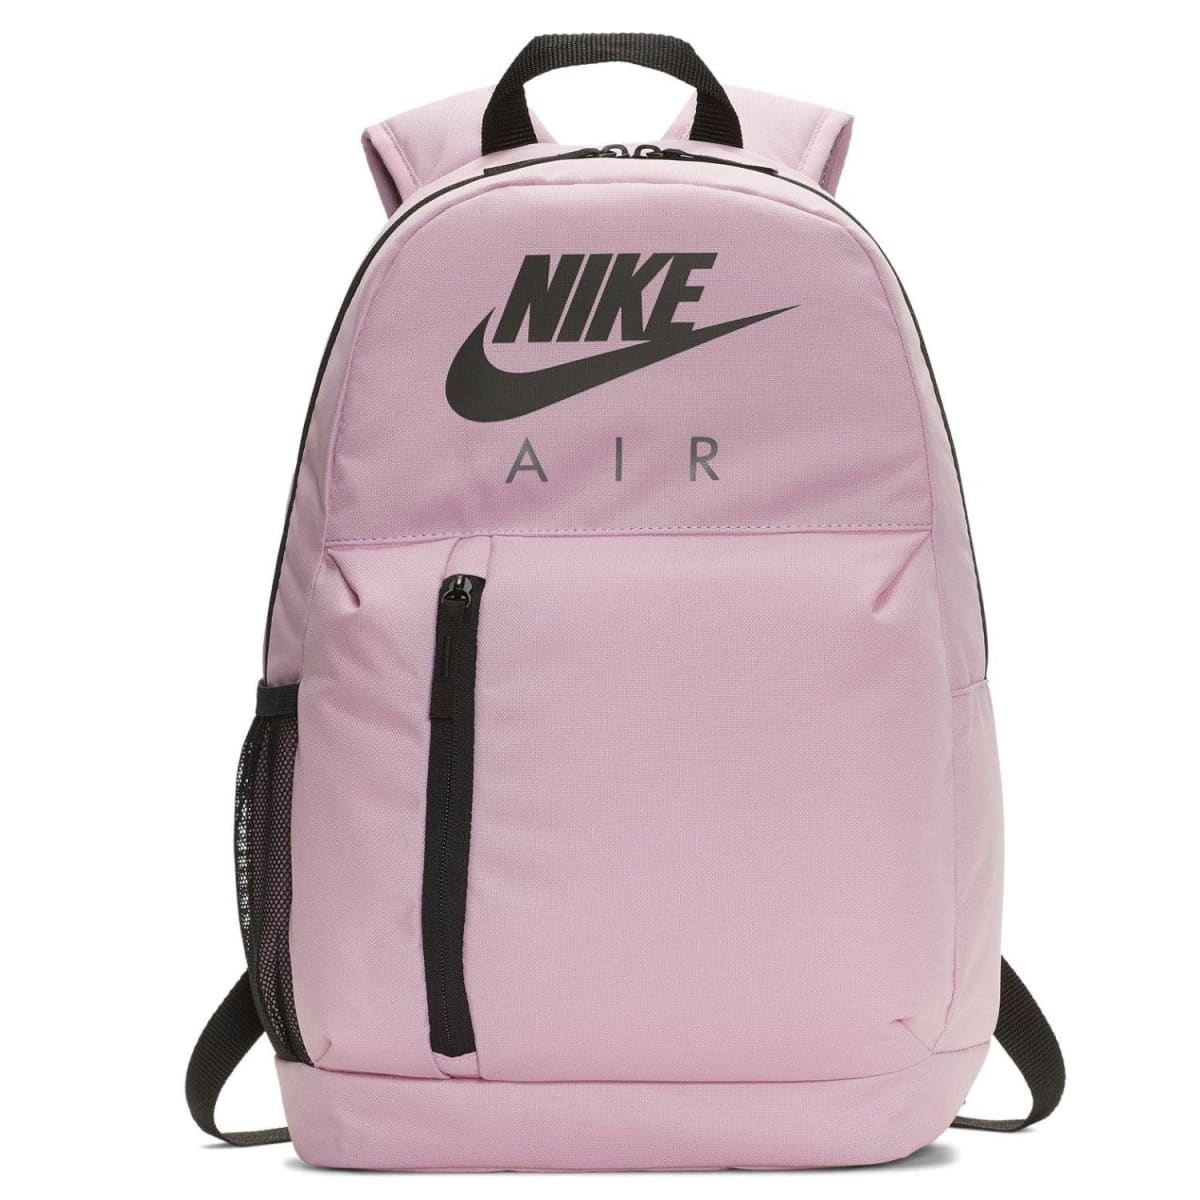 1ee439f0492 Product Image. Kids Nike Elemental Graphic Backpack (Pink)